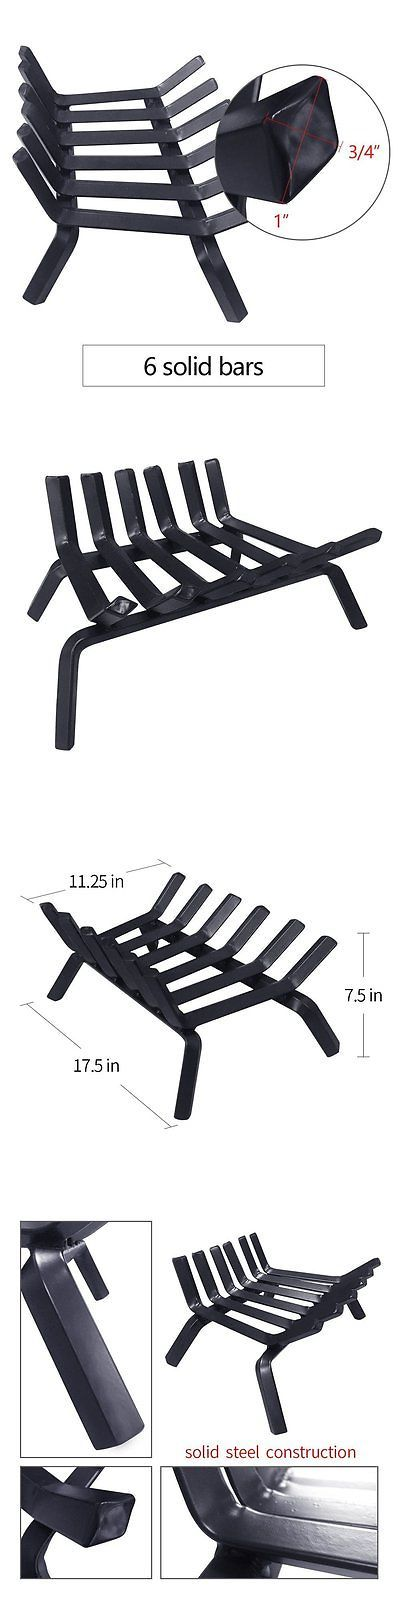 Andirons Grates and Firedogs 79648: Black Wrought Iron Fireplace Log Grate 18 Inch Wide Heavy Duty Solid Steel - New -> BUY IT NOW ONLY: $70.64 on eBay!